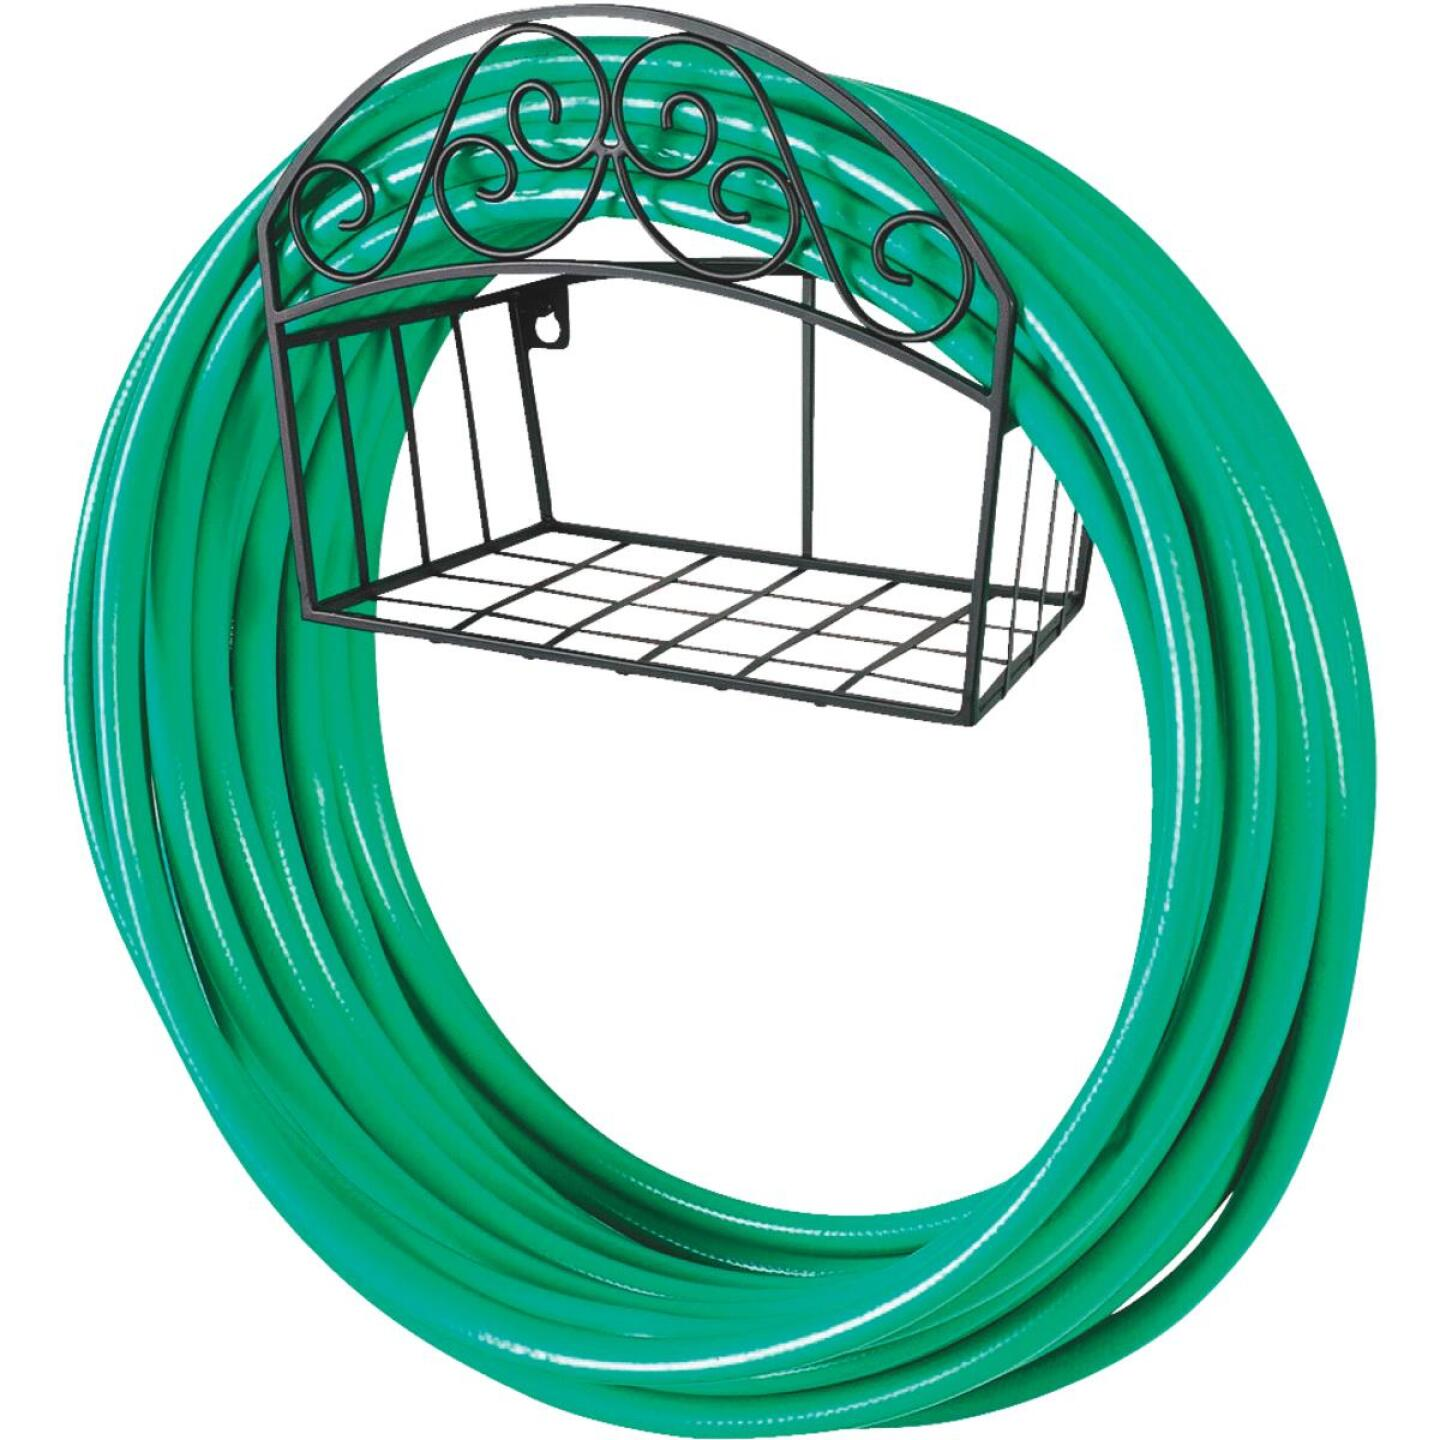 Liberty Garden 125Ft. x 5/8 In. Hose Capacity Decorative Wall Mount Hose Hanger Image 2